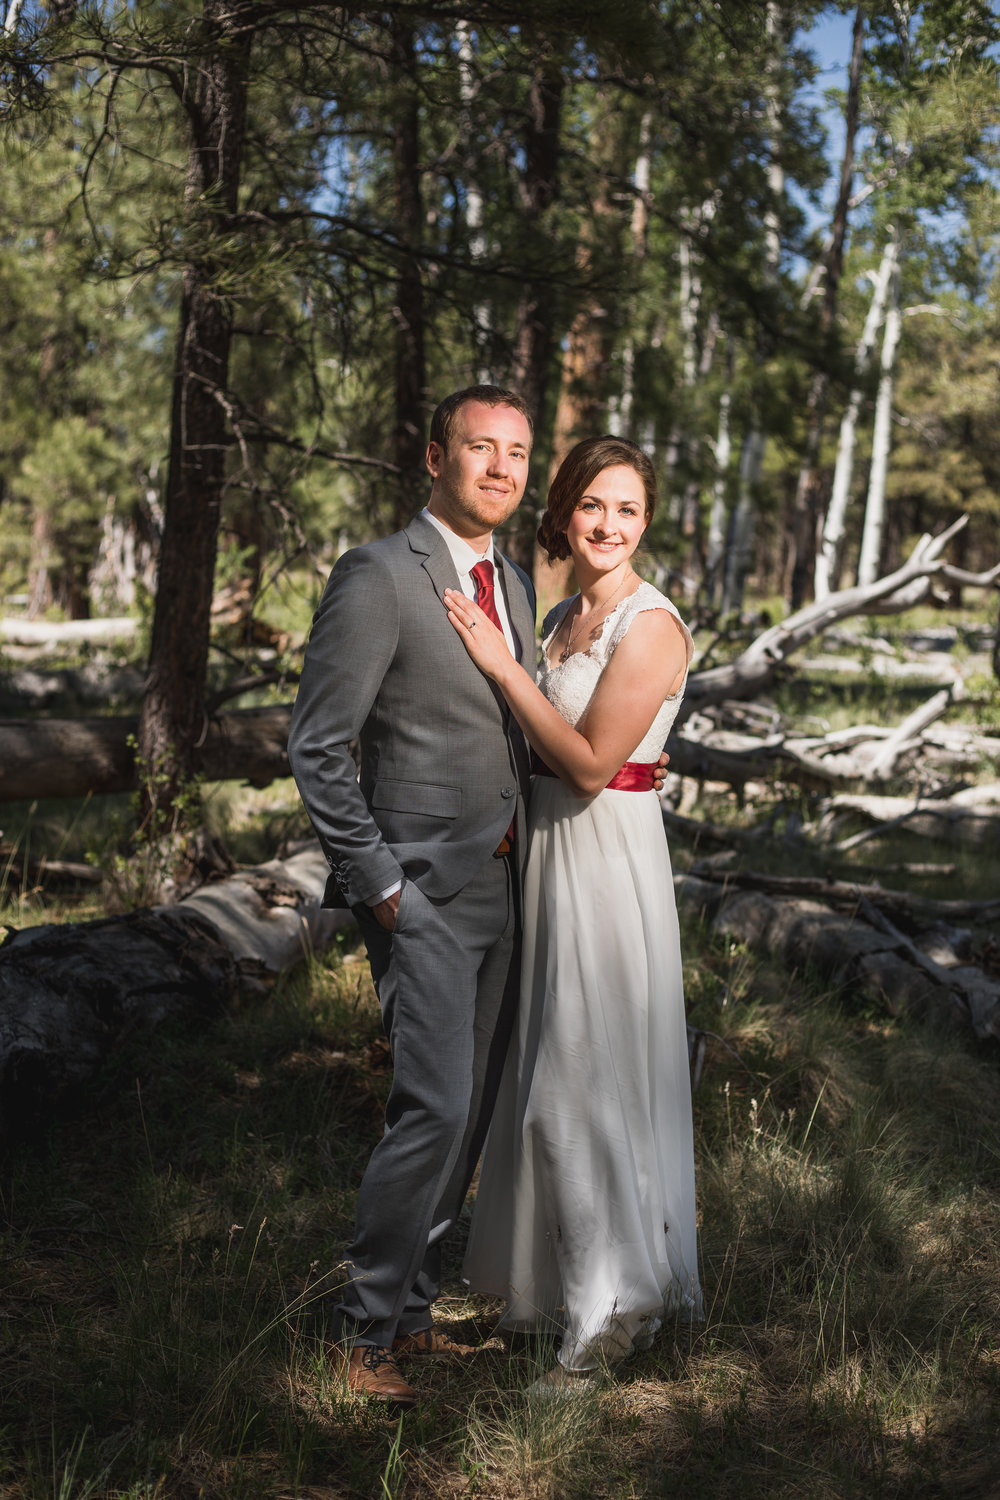 Flagstaff Arboretum Wedding portrait